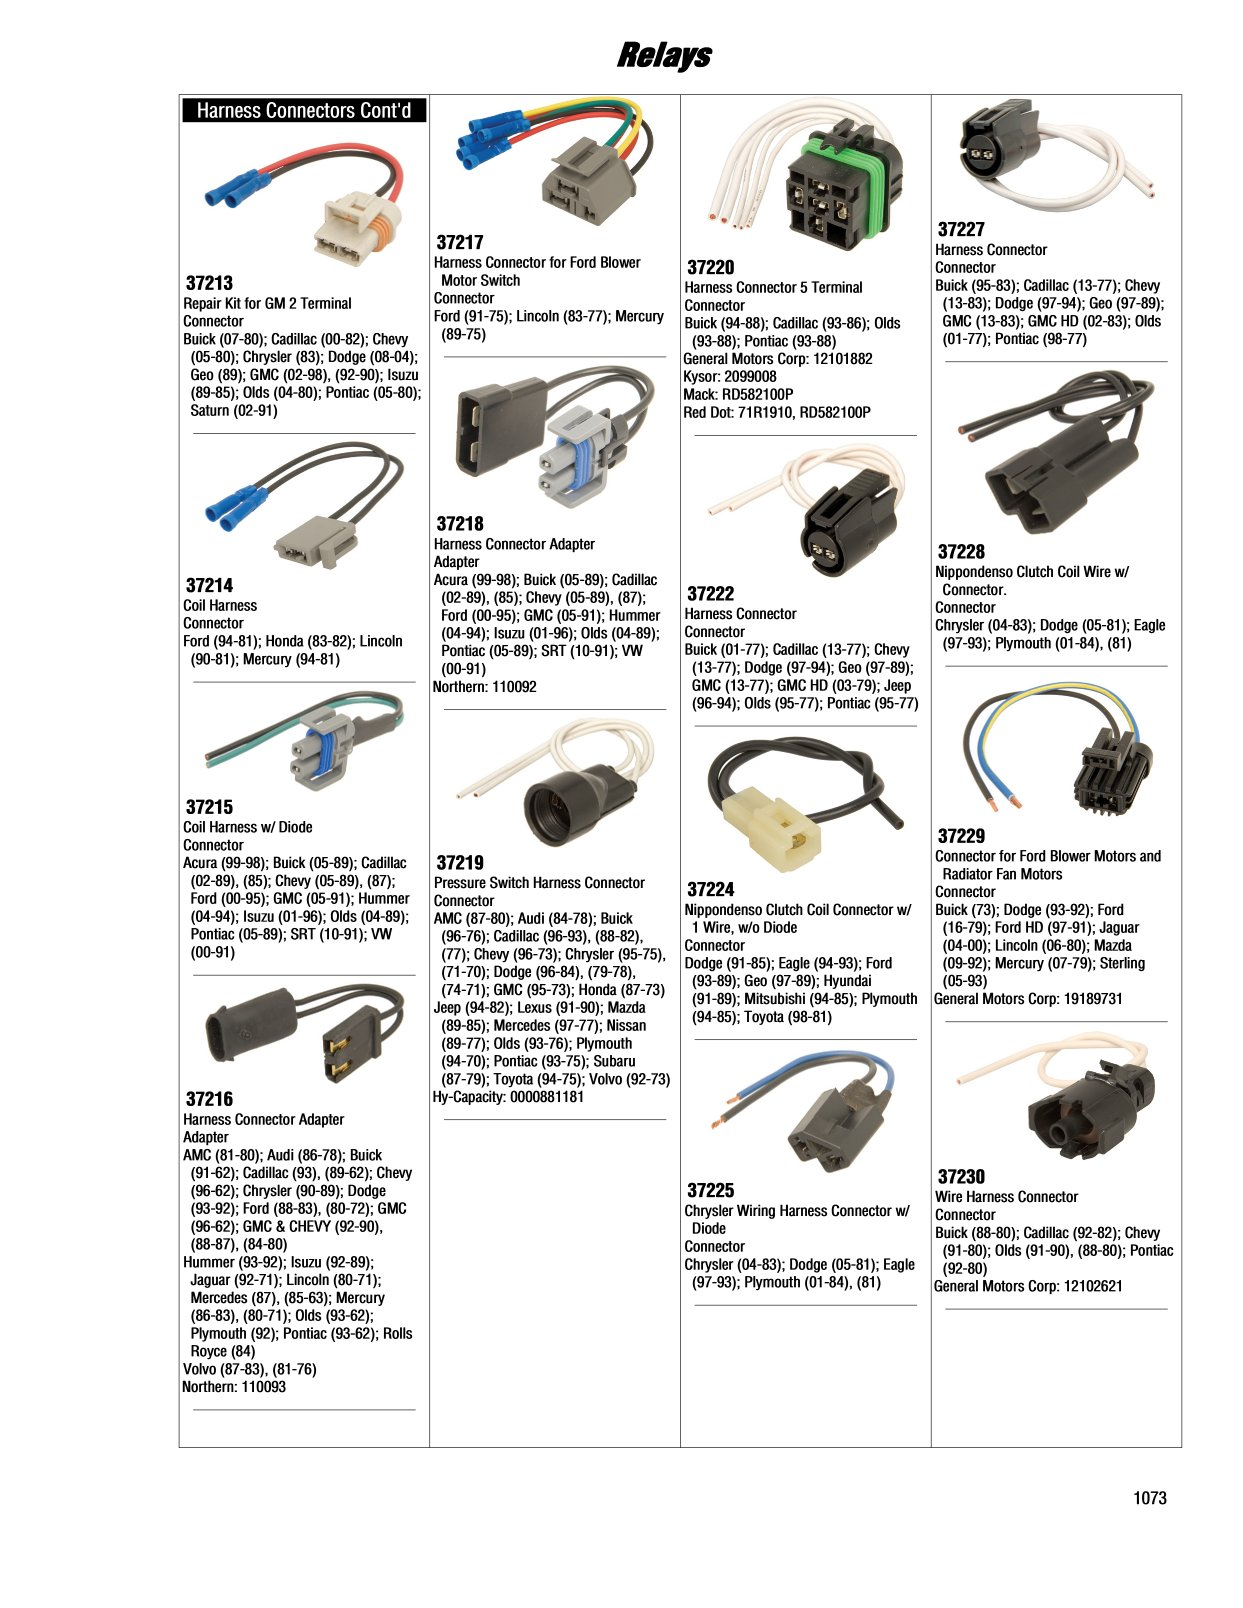 2017 Illustrated Guide Page 1073 Relays Jeep Wiring Harness Connectors